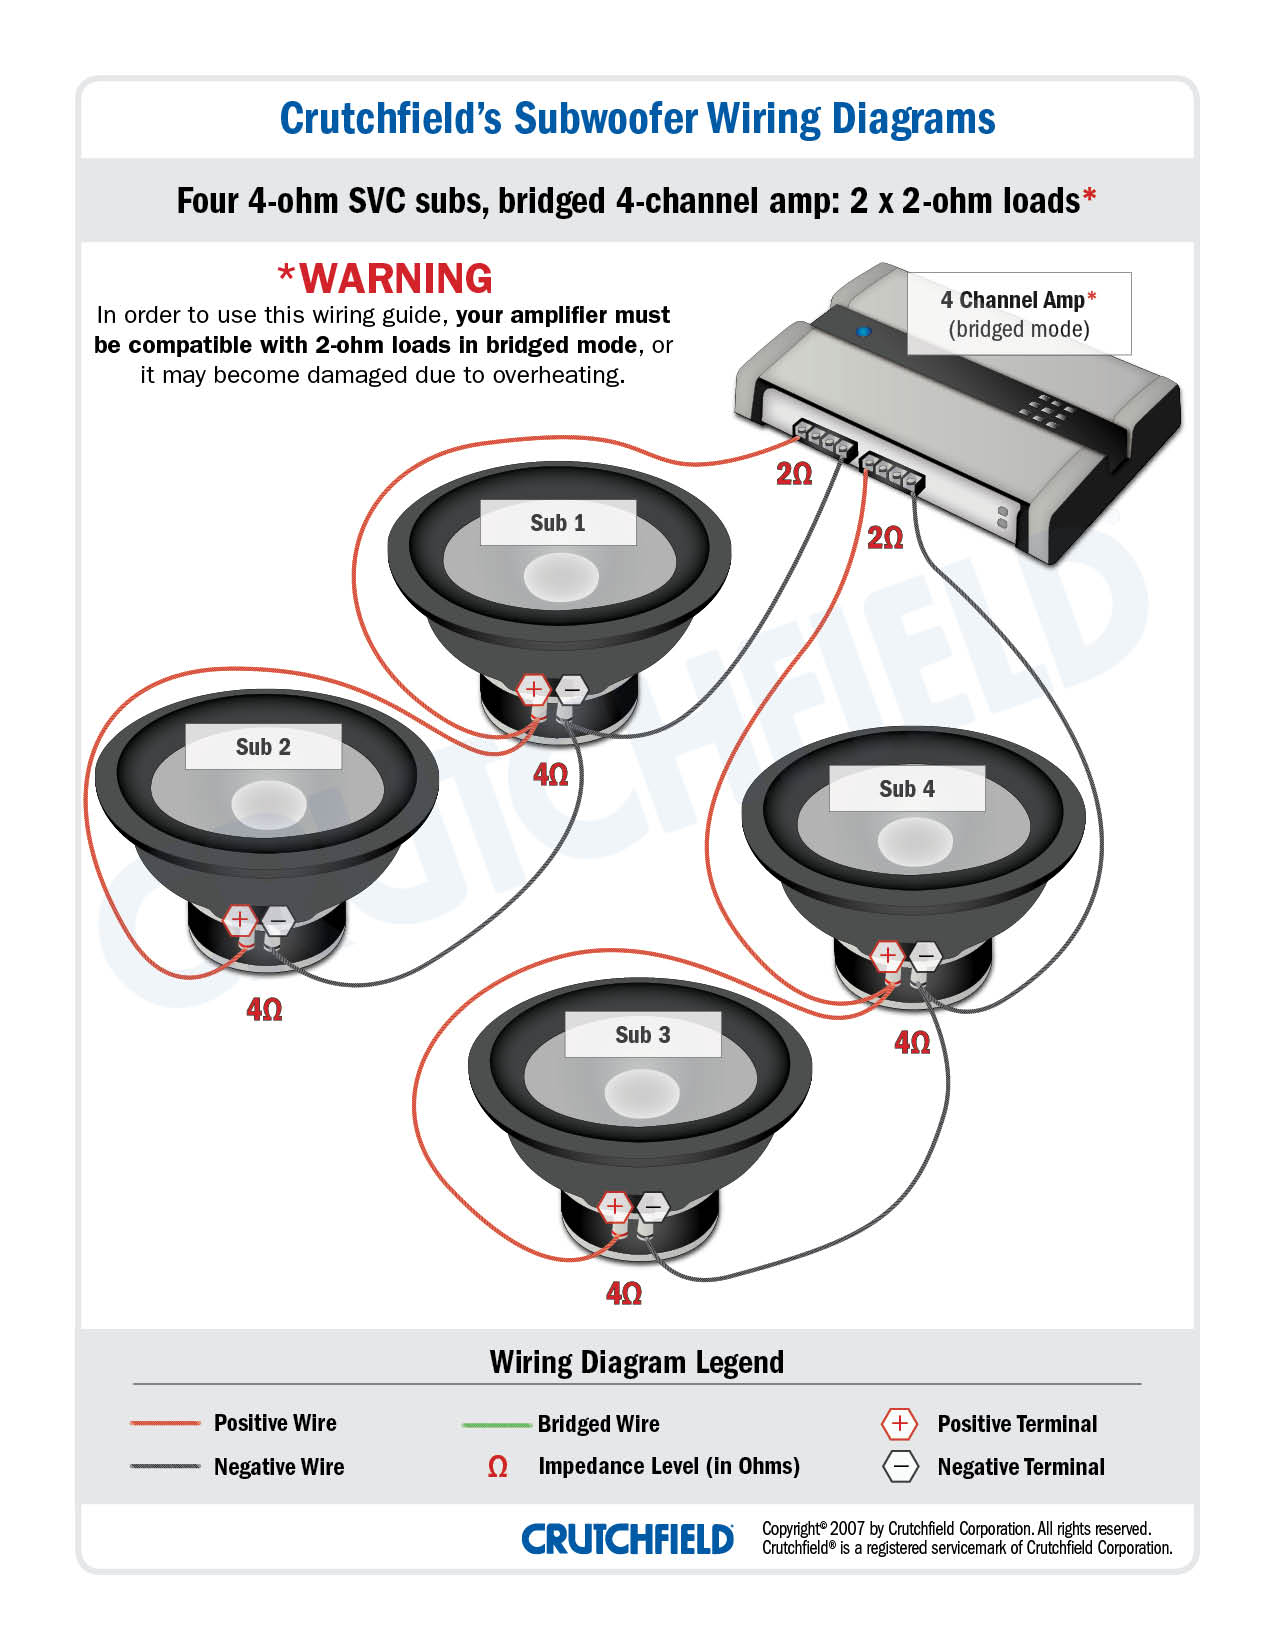 Spx Subwoofer Wiring Diagram - All Diagram Schematics on